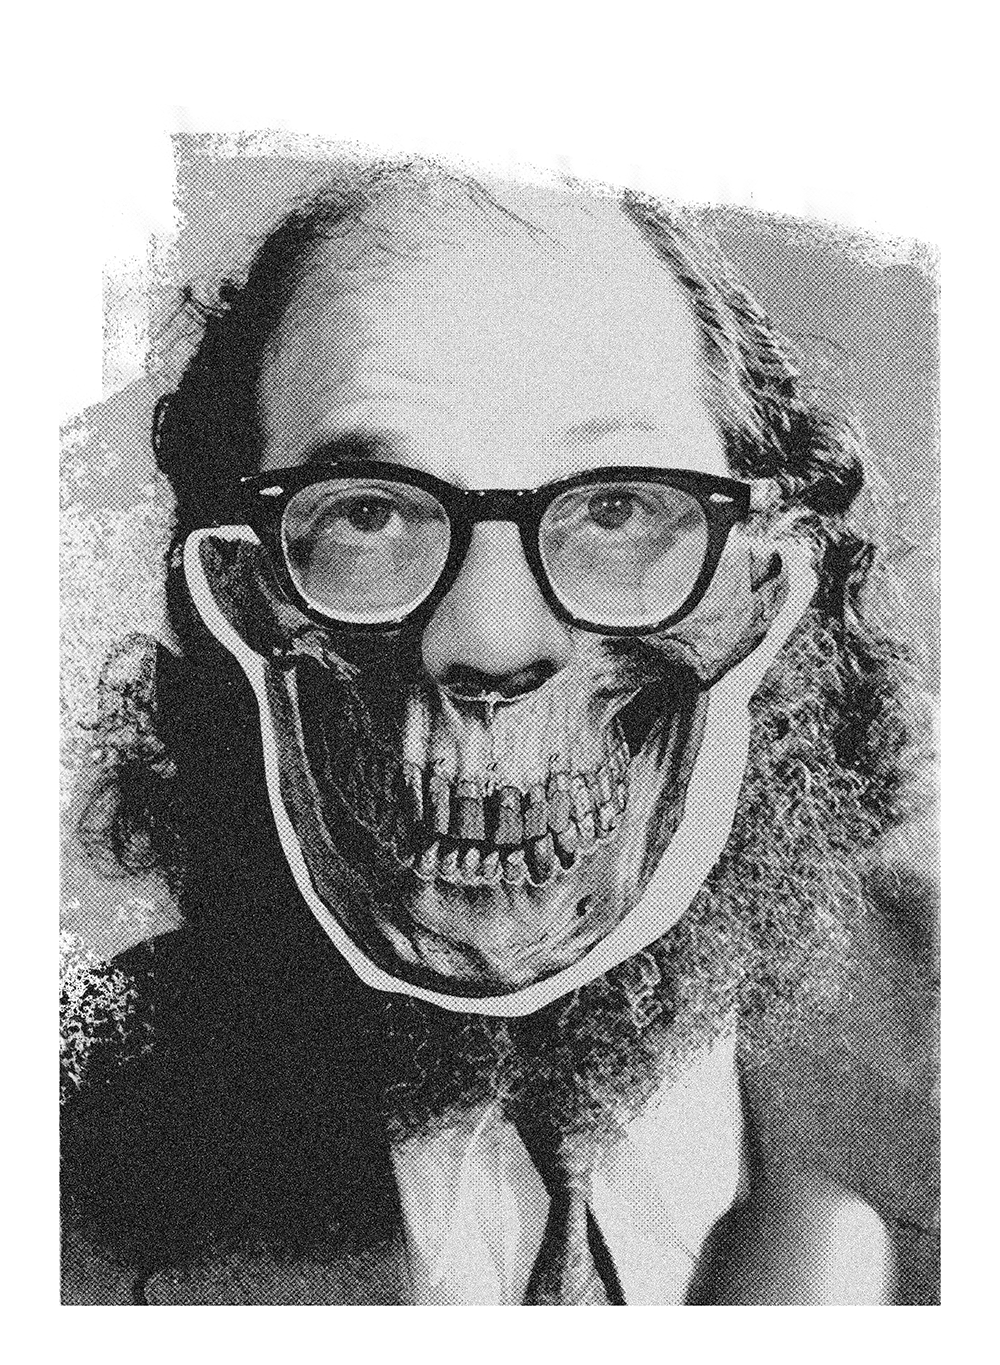 Allen Ginsberg - Illustration by Julie Smits for This Savage Beauty